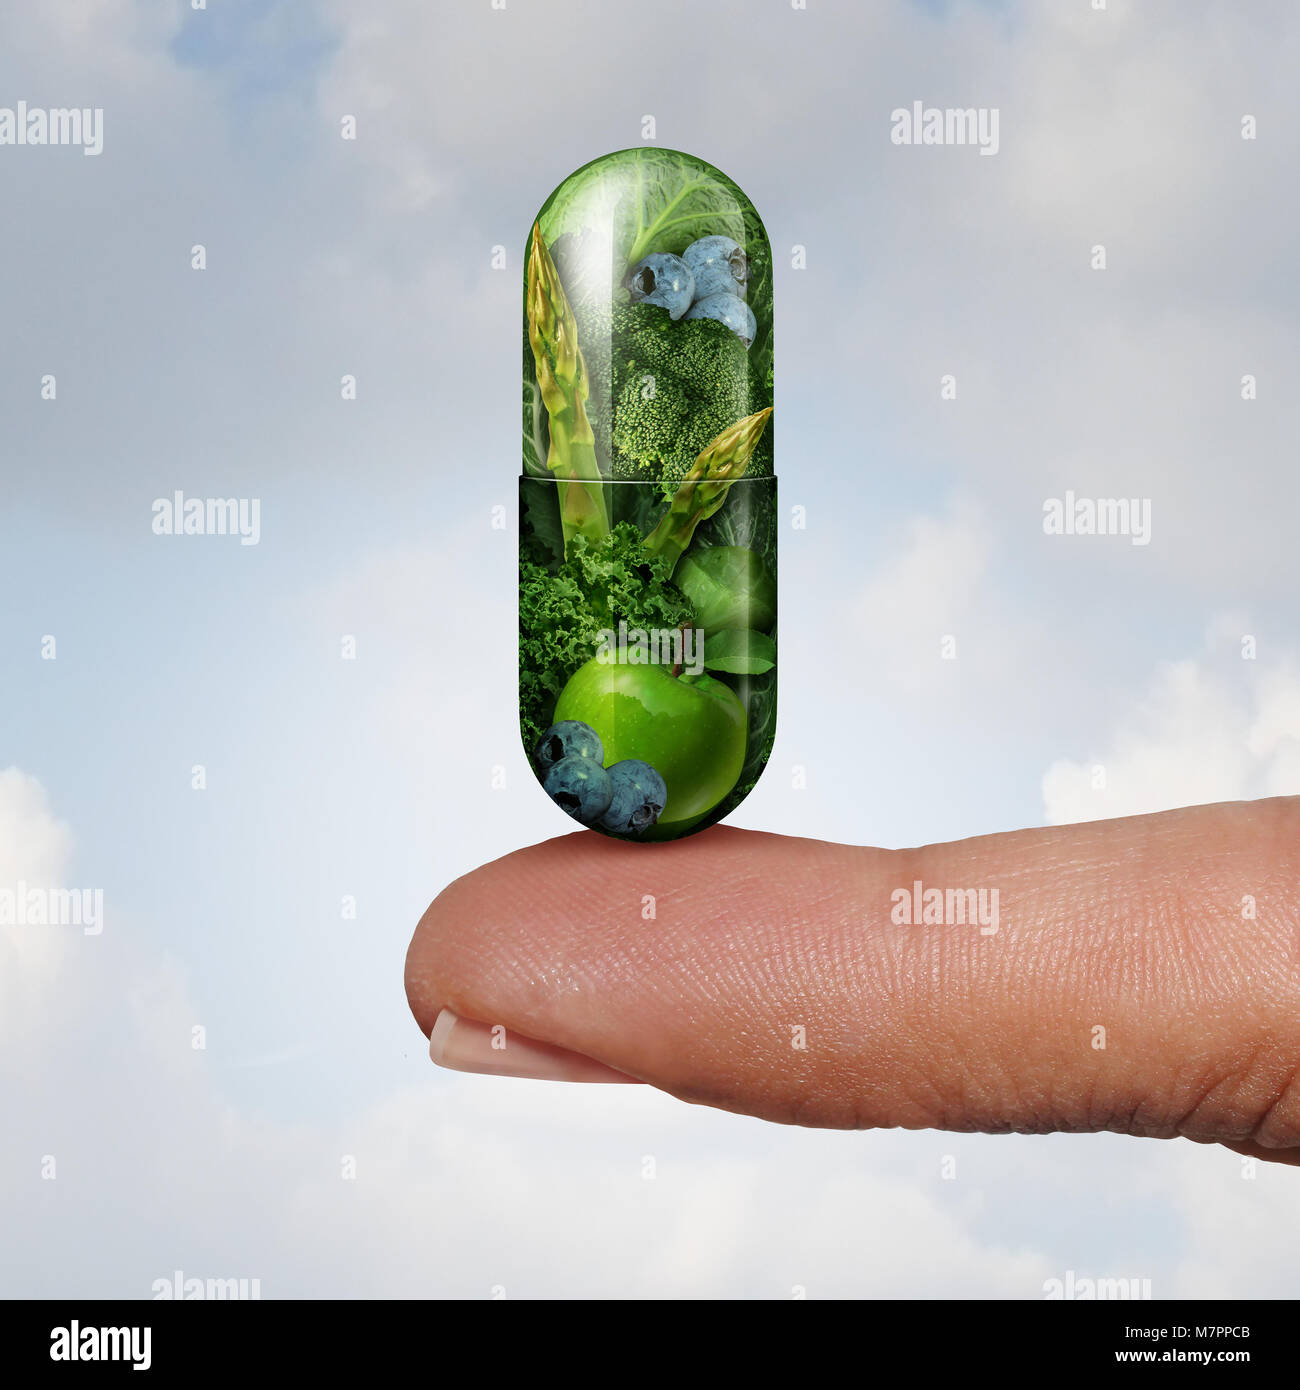 Health vitamin and dietary supplement as an alternative medicine and naturopathy or homeopathy symbol as a finger - Stock Image